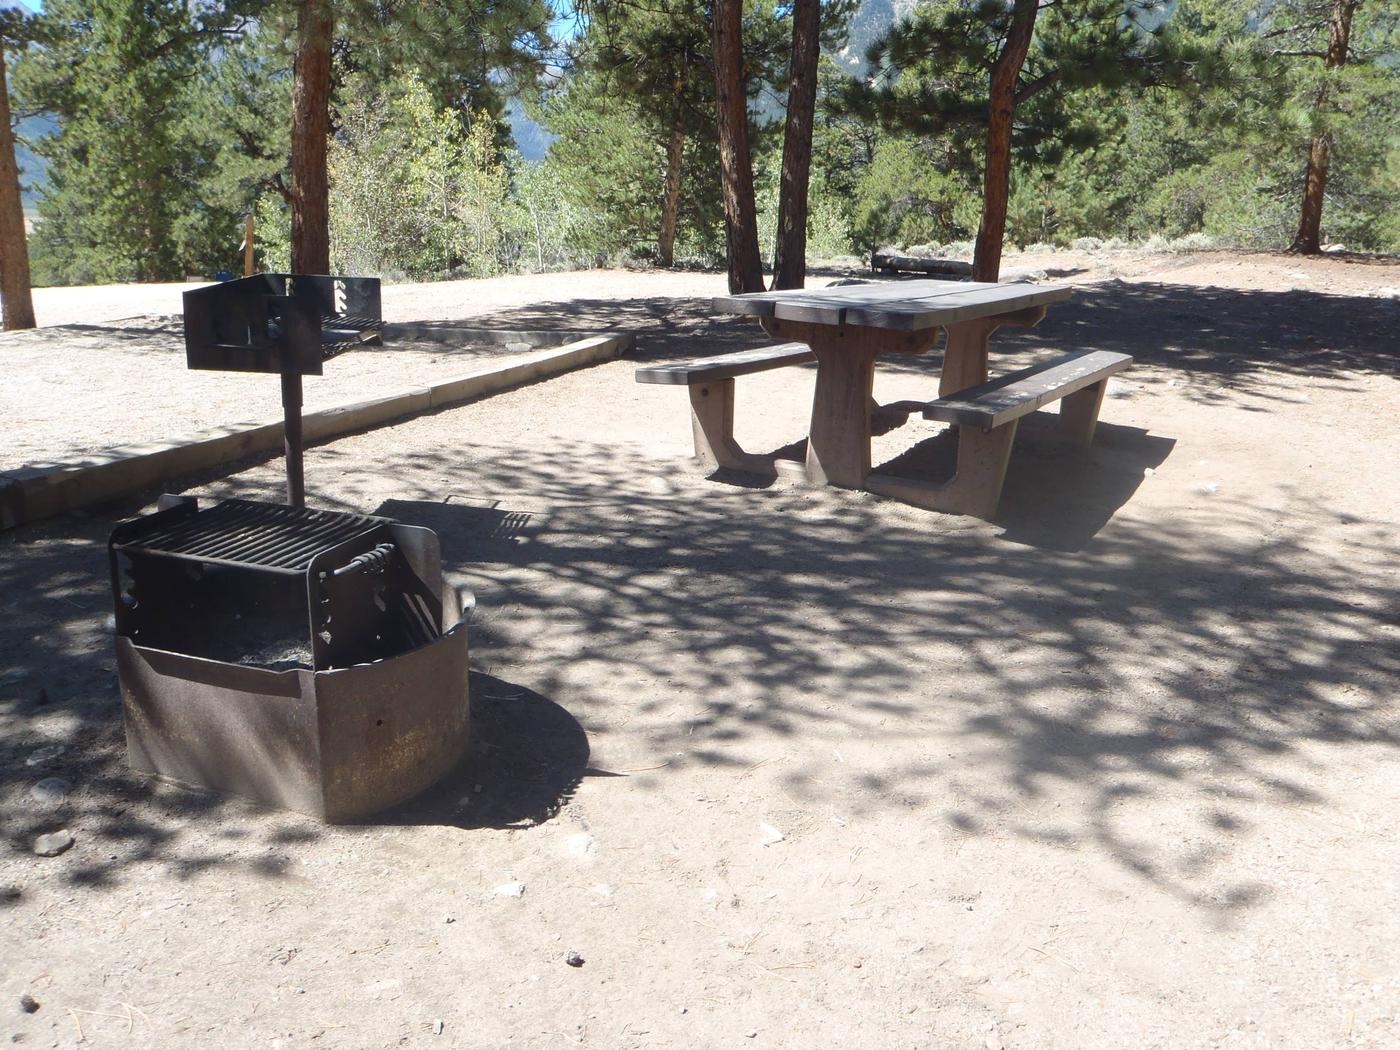 Lakeview Campground, site B5 picnic table and fire ring